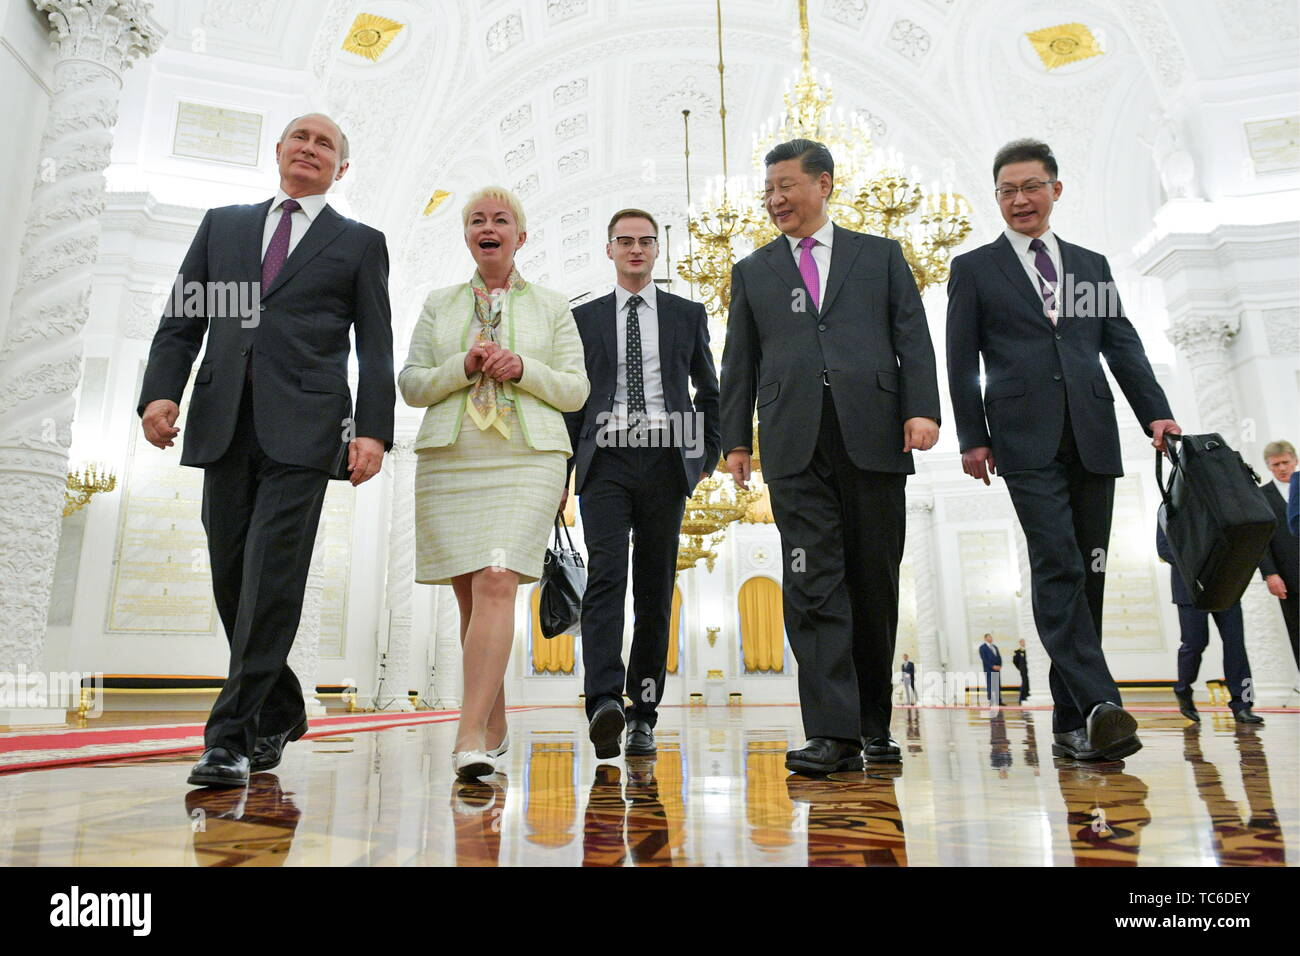 Moscow, Russia. 05th June, 2019. MOSCOW, RUSSIA - JUNE 5, 2019: Russia's President Vladimir Putin (L), China's President Xi Jinping (2nd R) during a meeting at the Moscow Kremlin. Alexei Druzhinin/Russian Presidential Press and Information Office/TASS Credit: ITAR-TASS News Agency/Alamy Live News - Stock Image